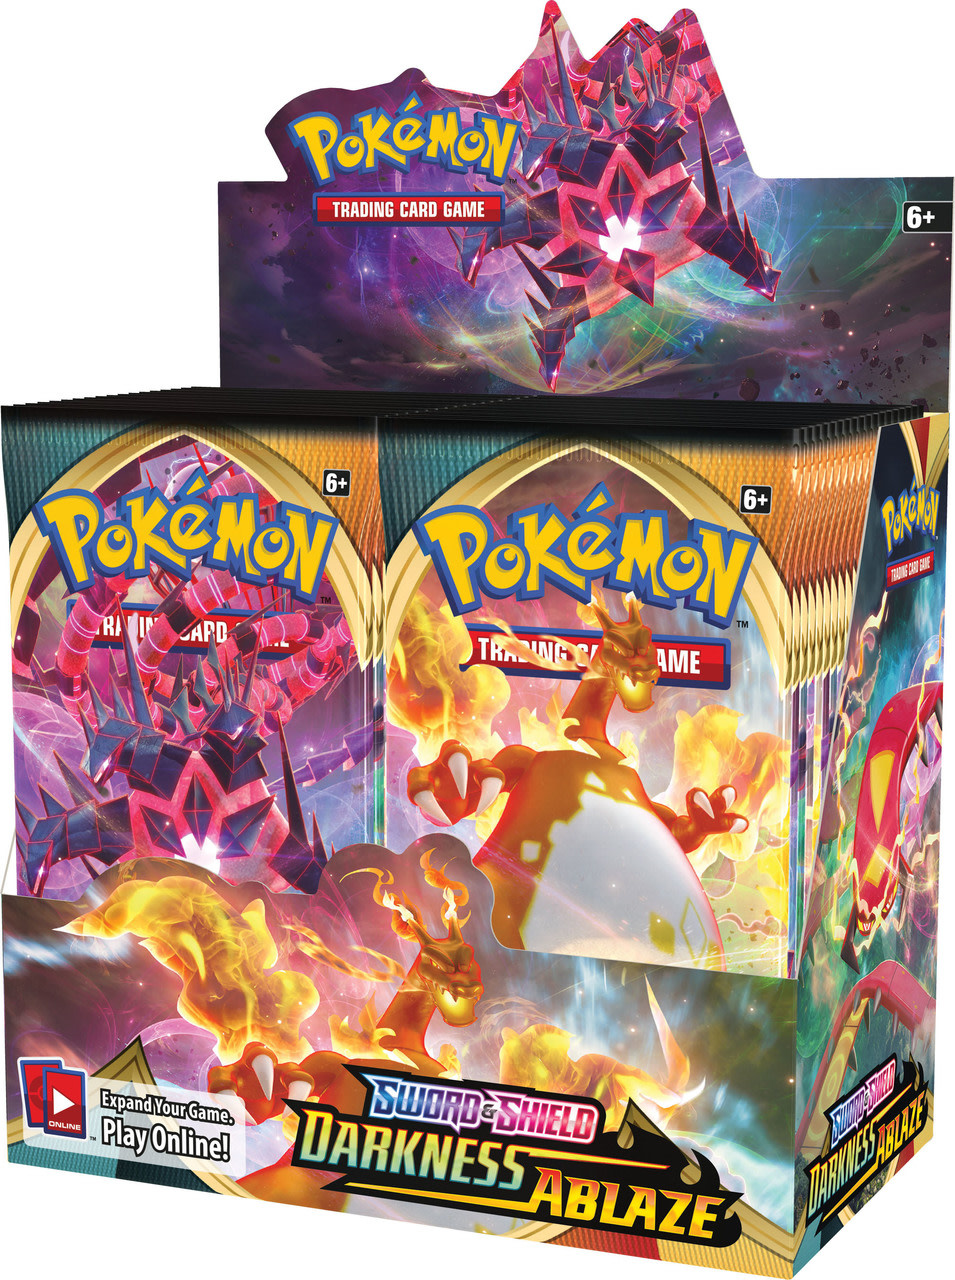 Booster Box - Pokémon Darkness Ablaze